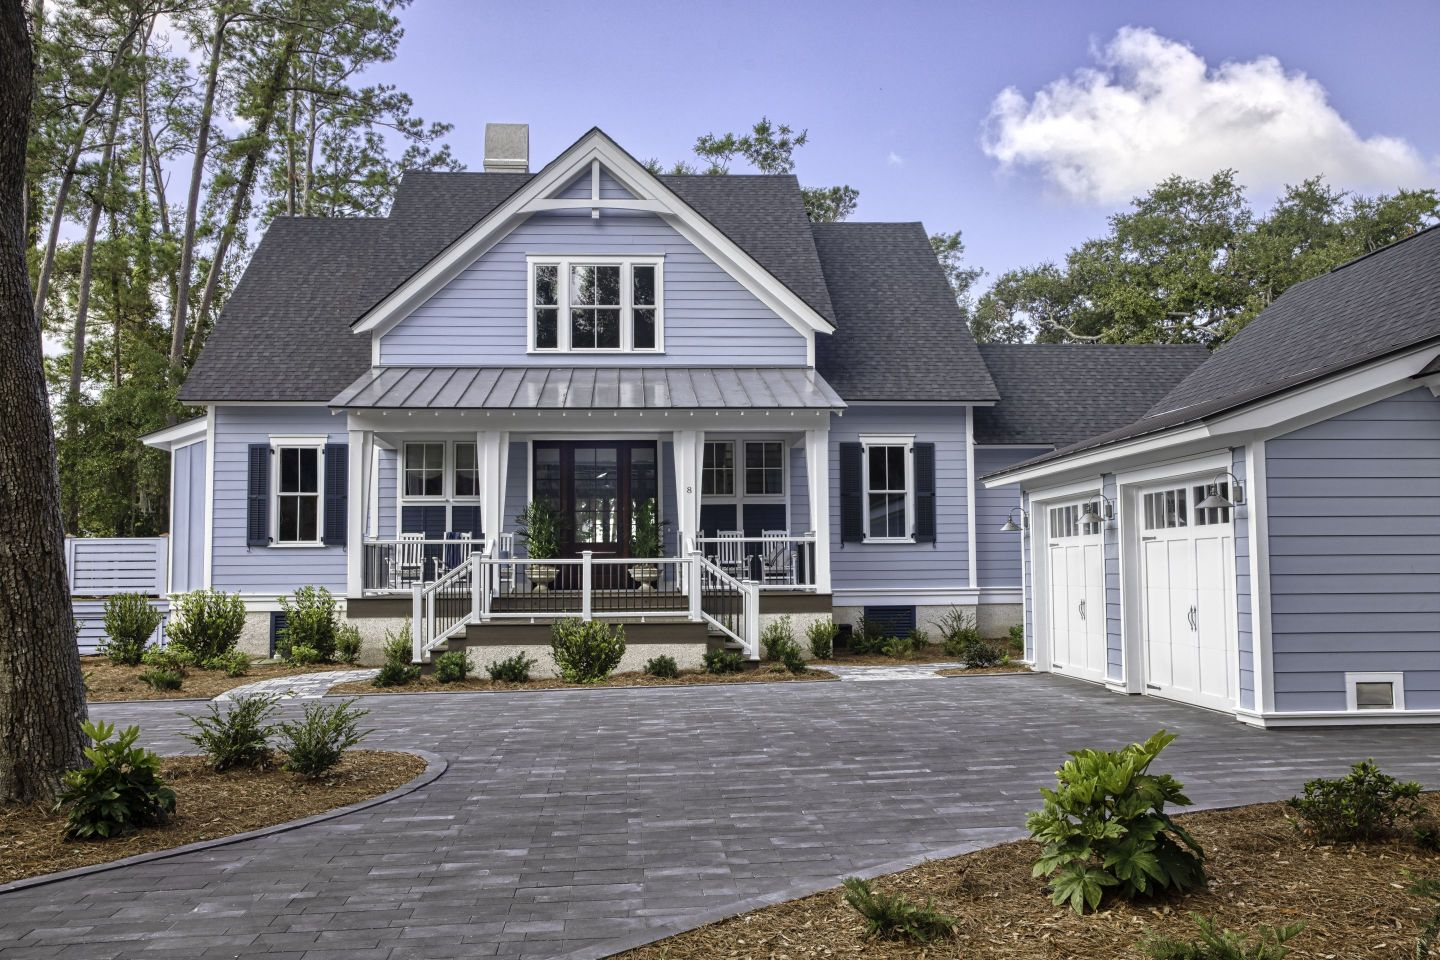 HGTV-Dream-Home-2020-Front-Yard Lowcountry Vacation Home Style in Hilton Head with HGTV Dream Home 2020